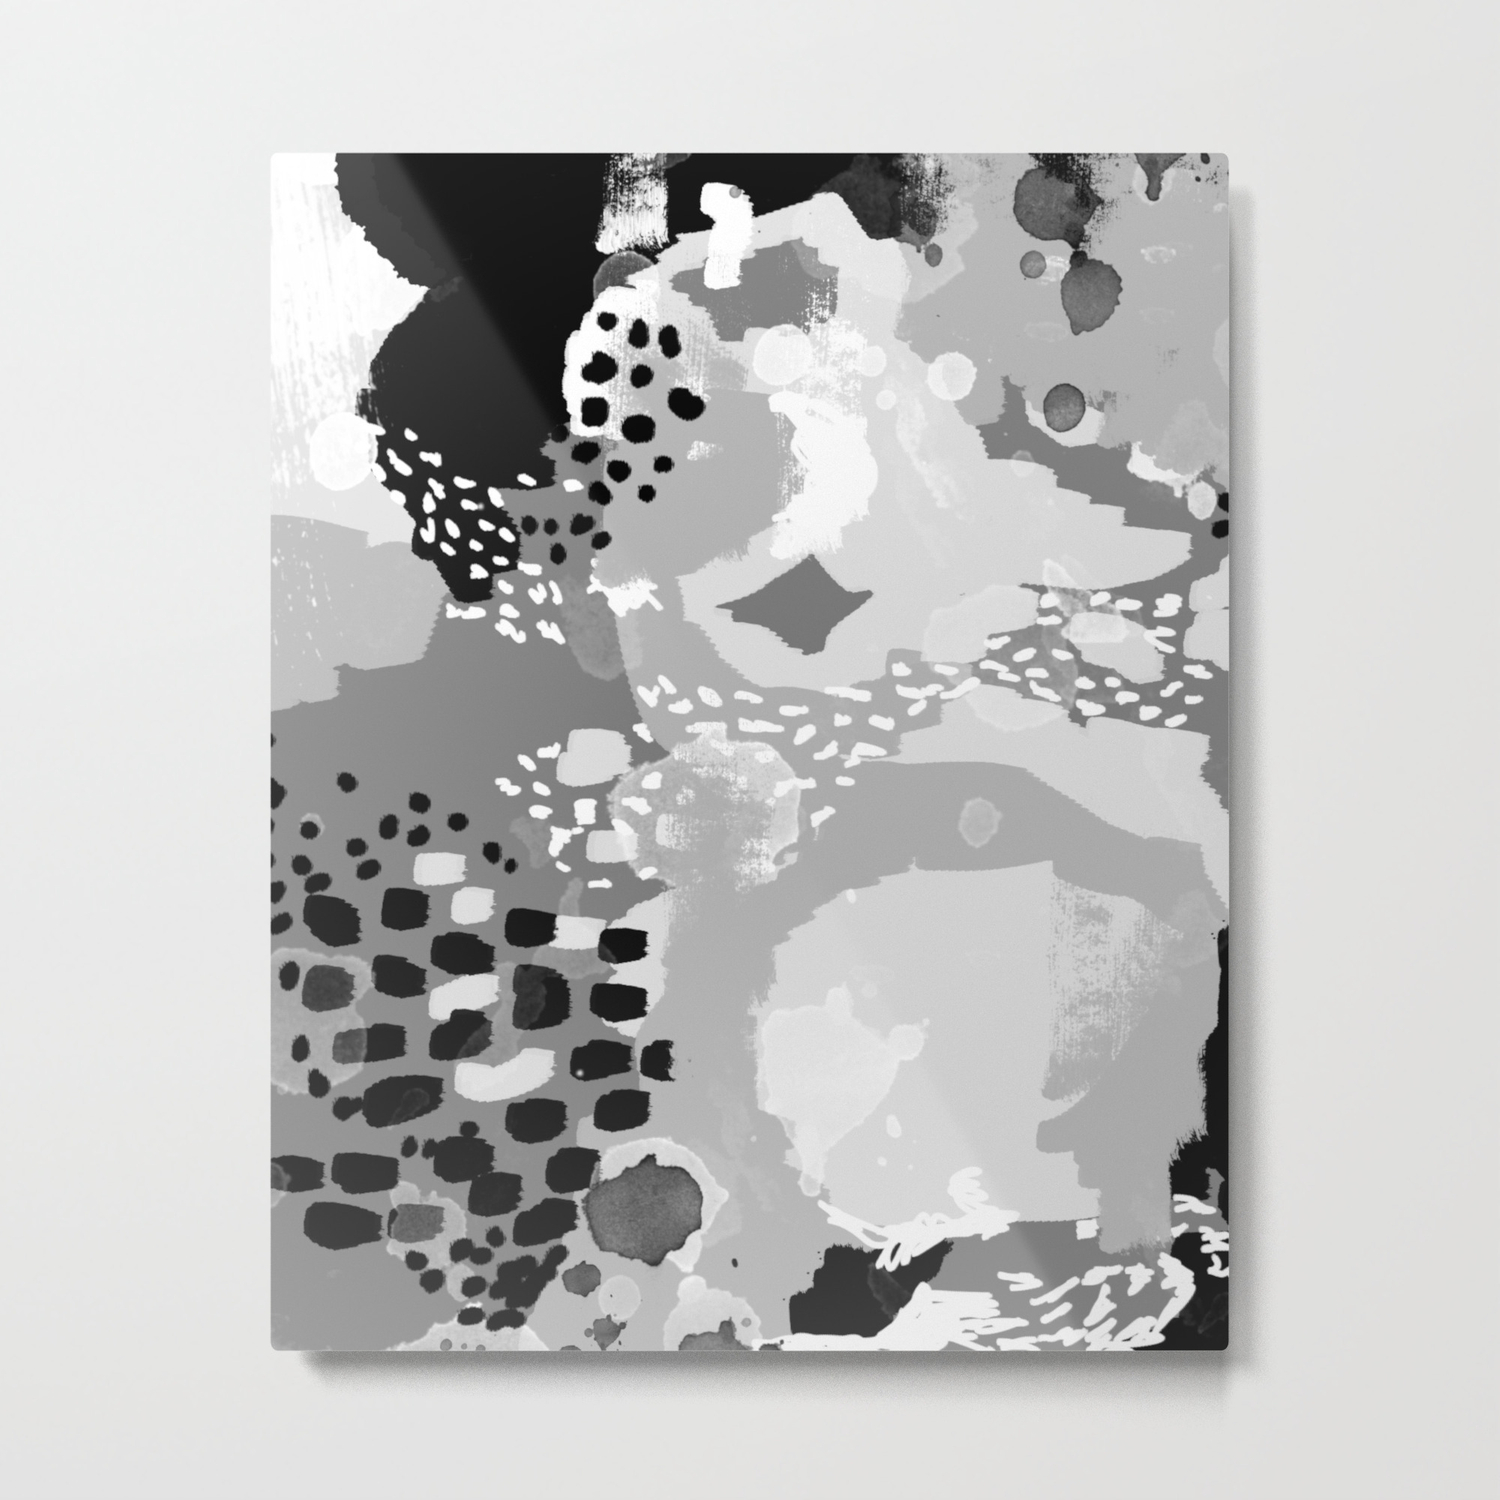 Rion modern minimal black and white abstract painting brooklyn nyc home decor canvas abstract art metal print